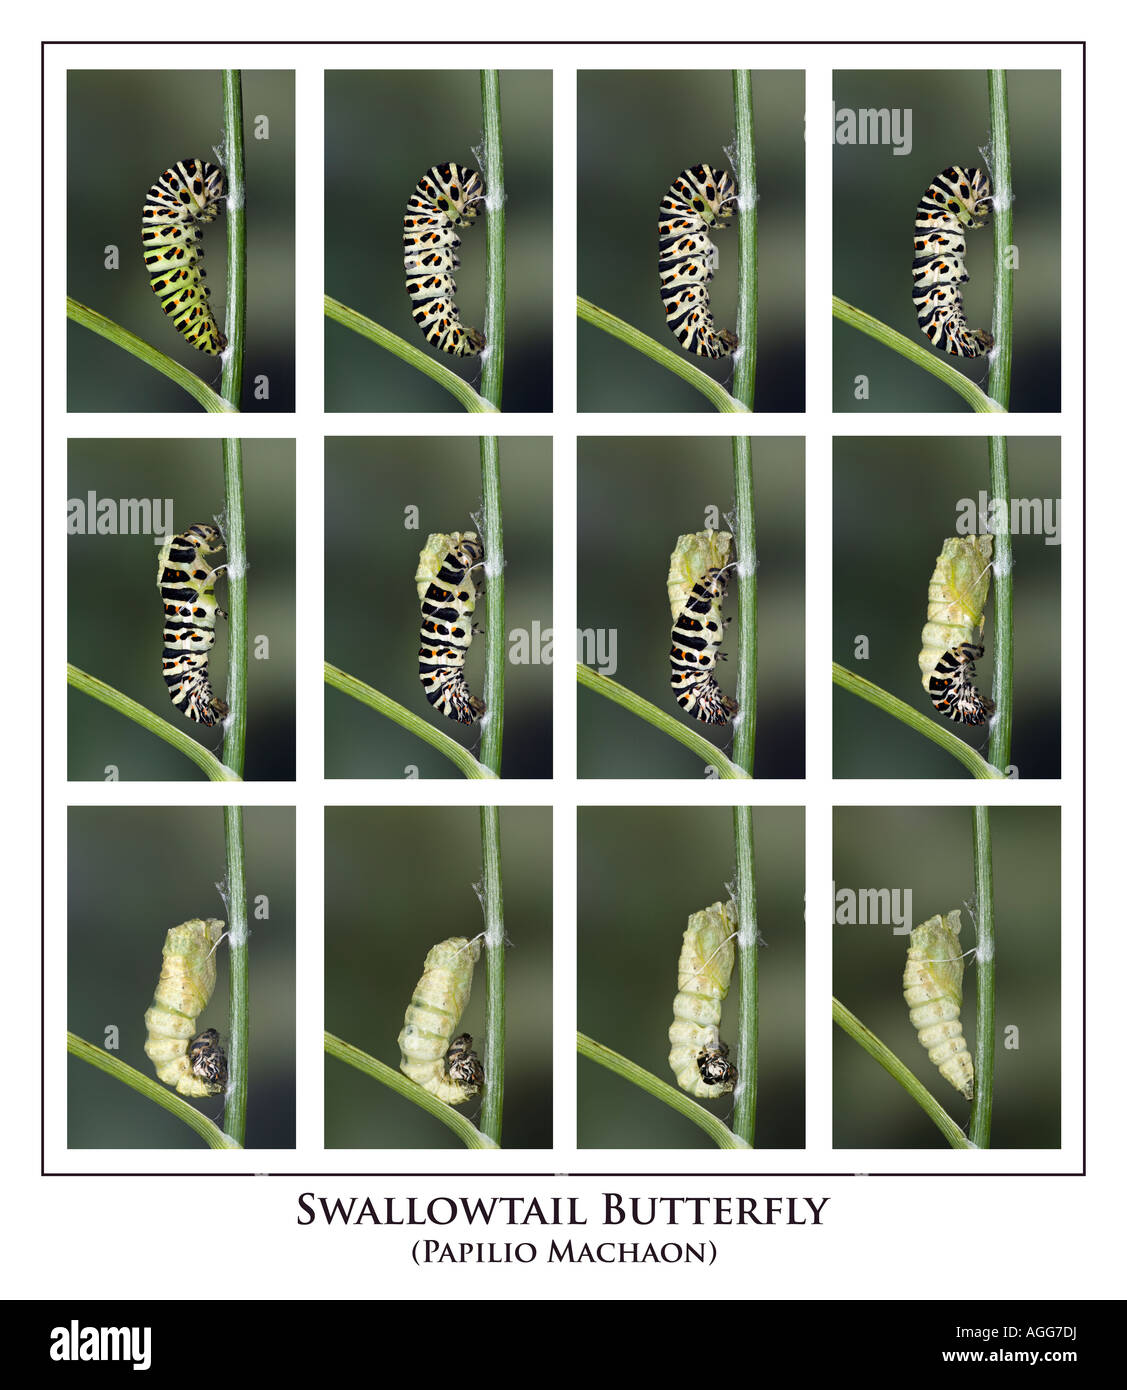 Swallowtail Papilio machaon  larvae undergoing transformation to chrysalis - Stock Image